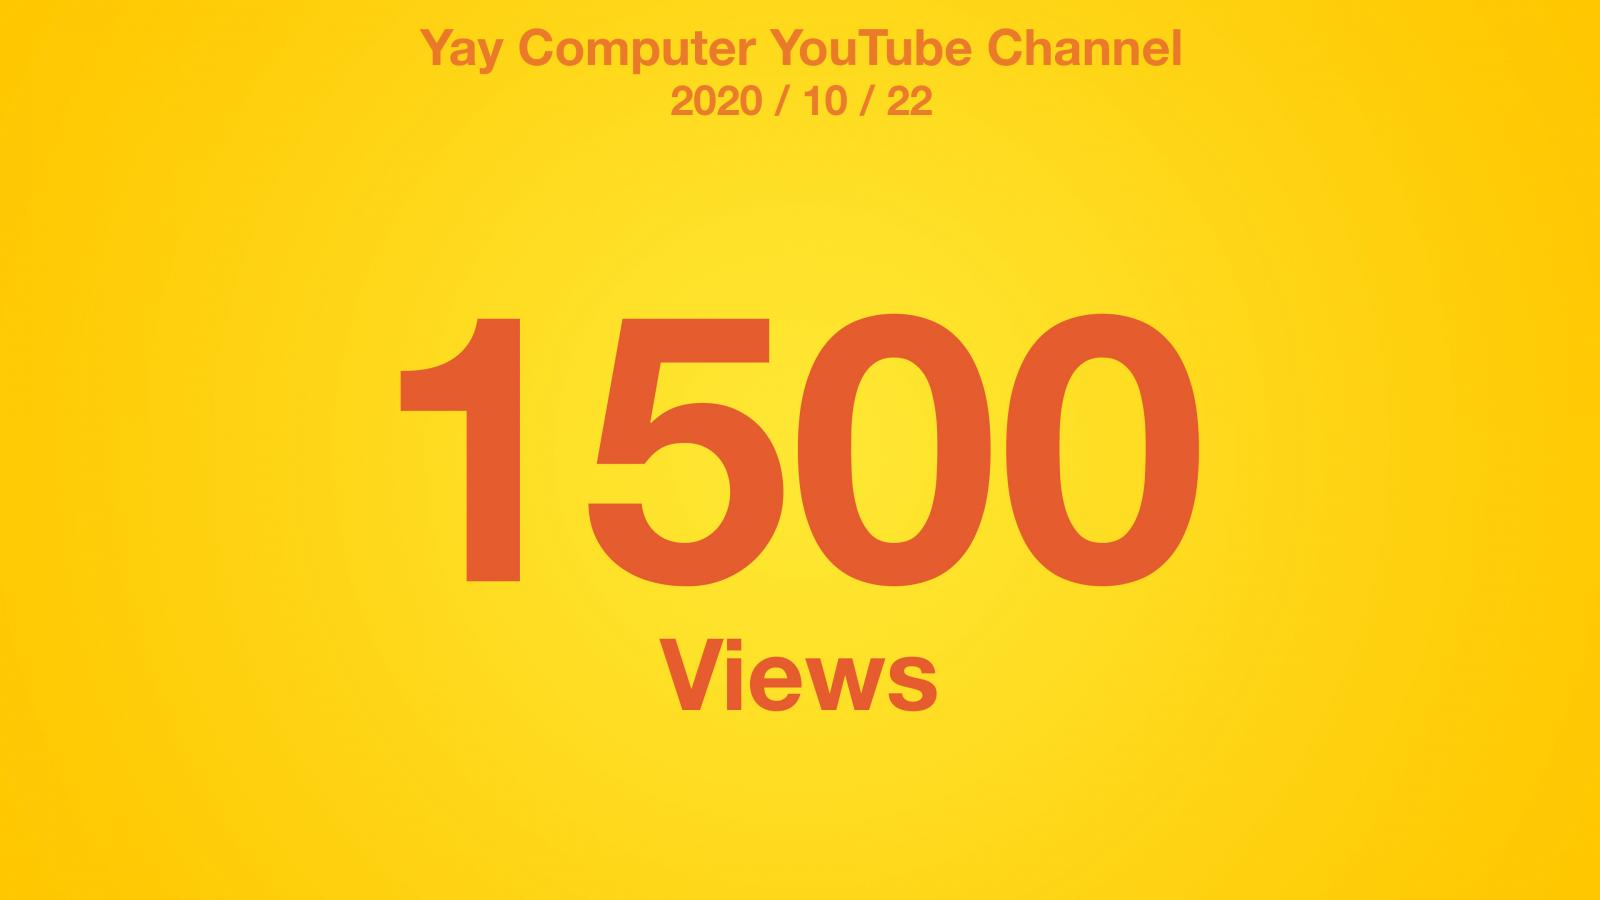 A yellow radial gradient with red text: Yay Computer YouTube Channel 2020/10/22 1500 Views